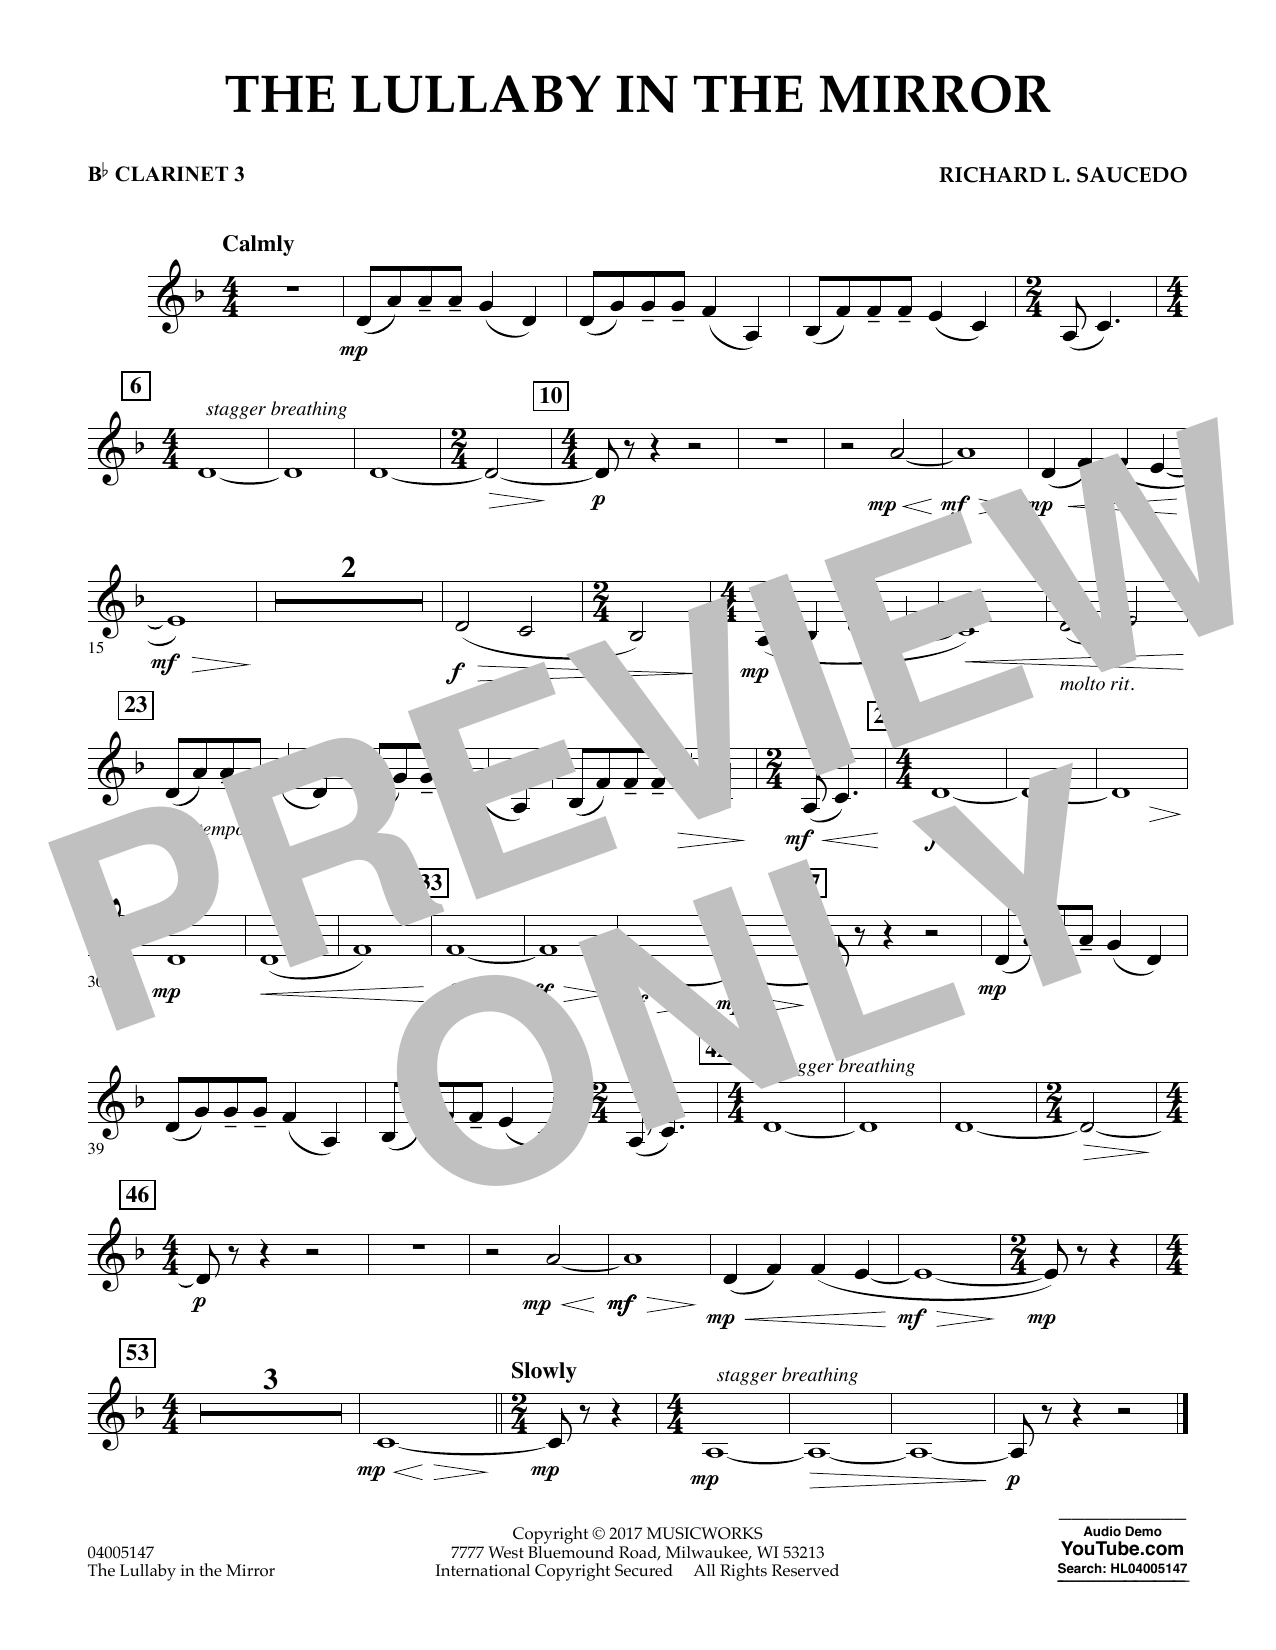 Richard L. Saucedo The Lullaby in the Mirror - Bb Clarinet 3 sheet music notes and chords. Download Printable PDF.